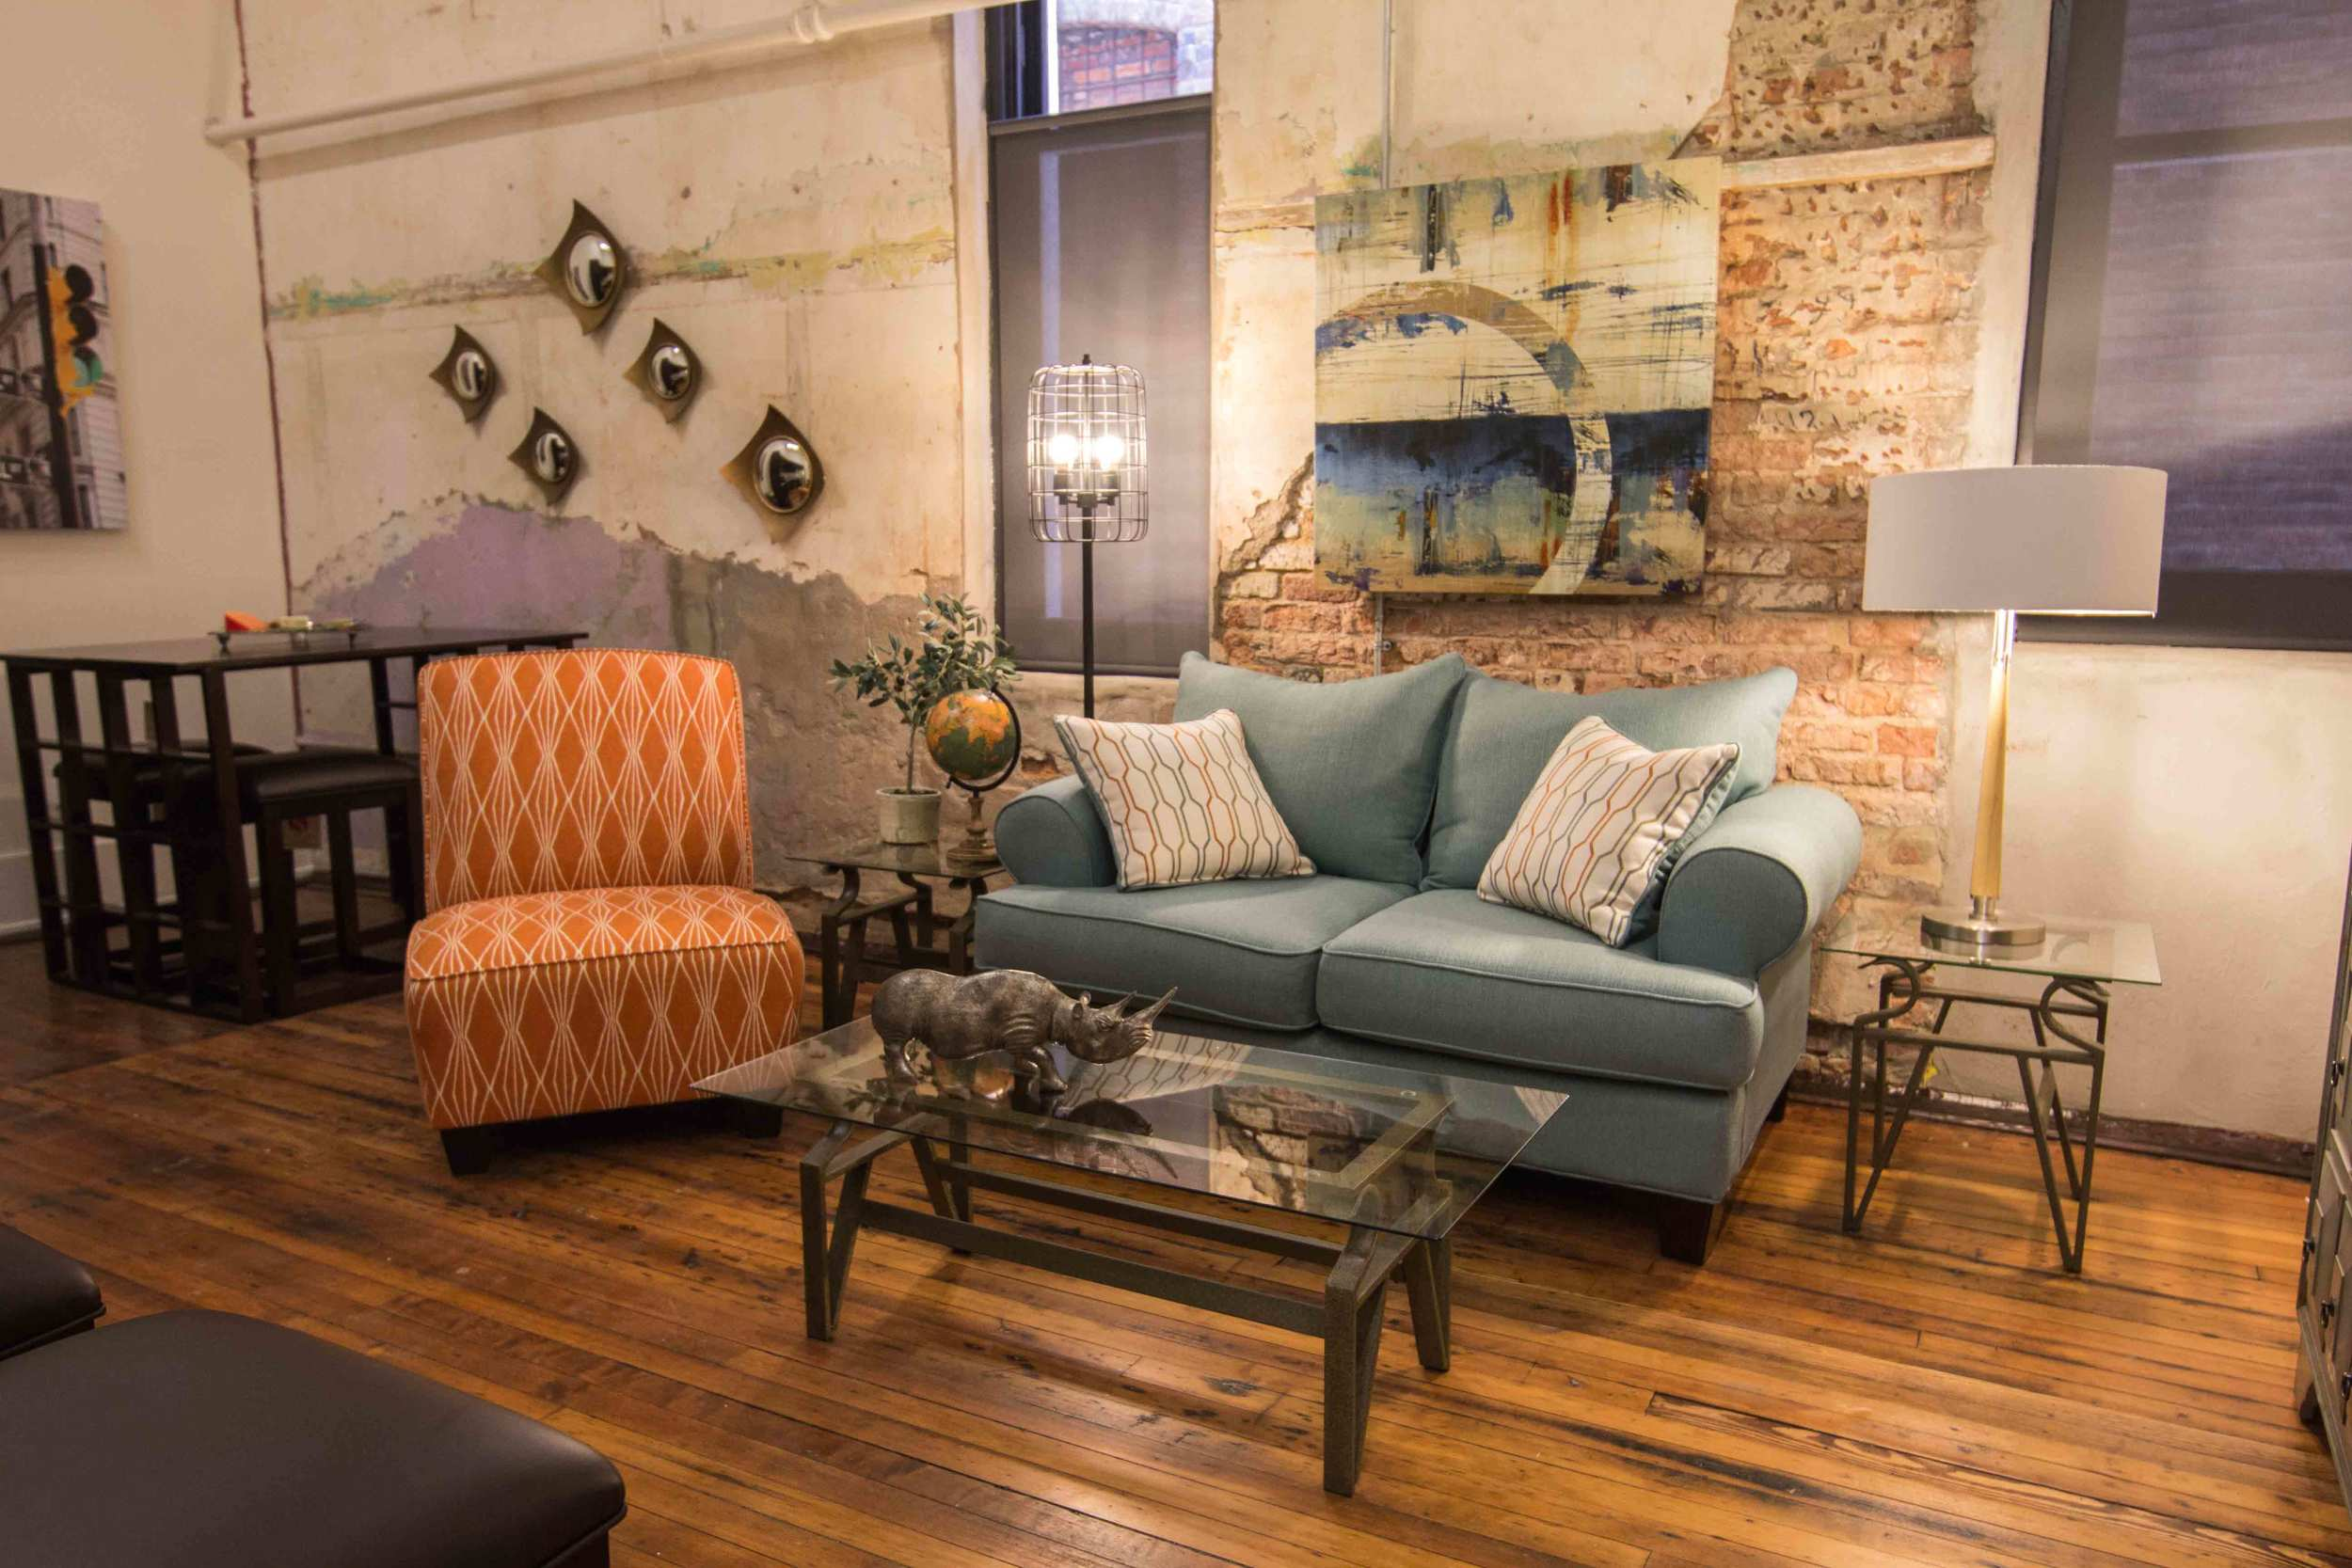 Beautifully appointed Capitol loft